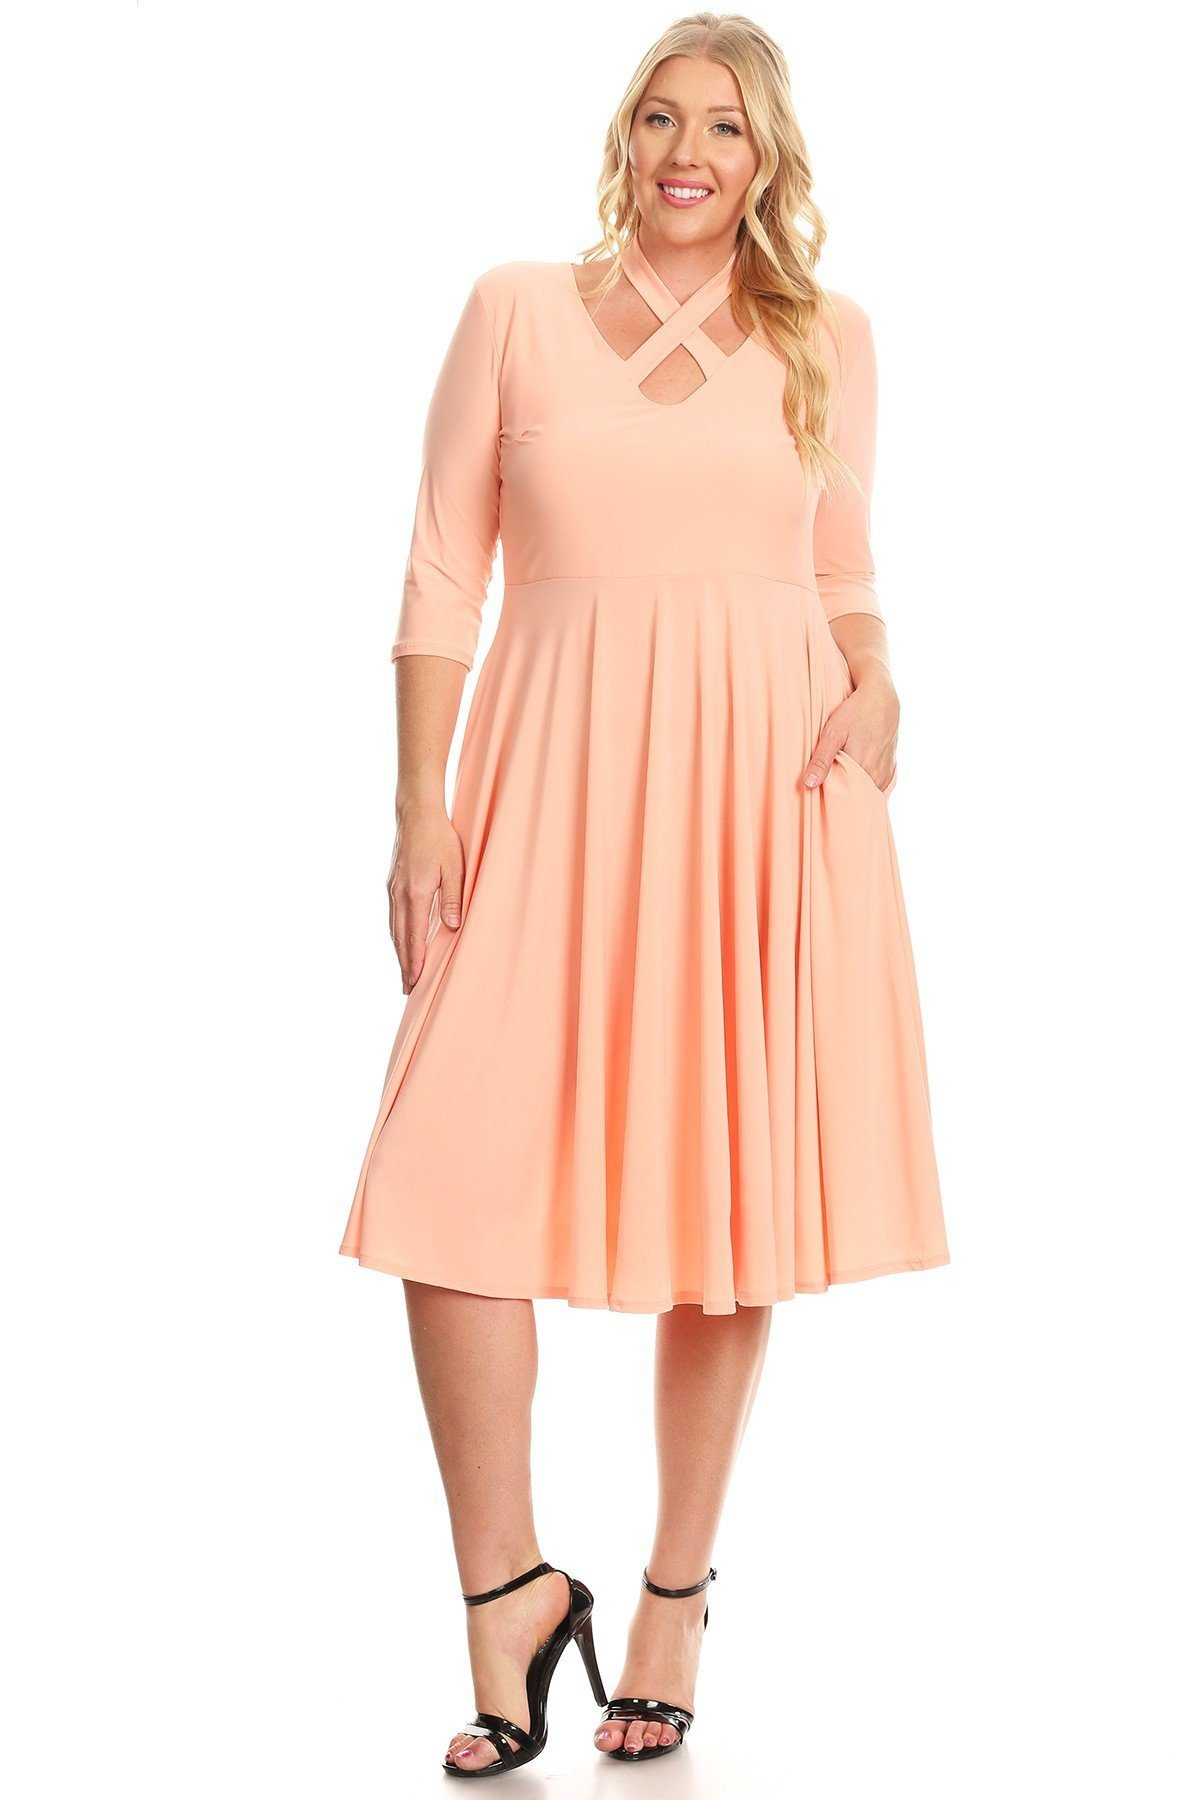 Pastel by Vivienne Women's Fit and Flare Plus Dress with Criss-Cross Halter Neck XXX-Large Peach